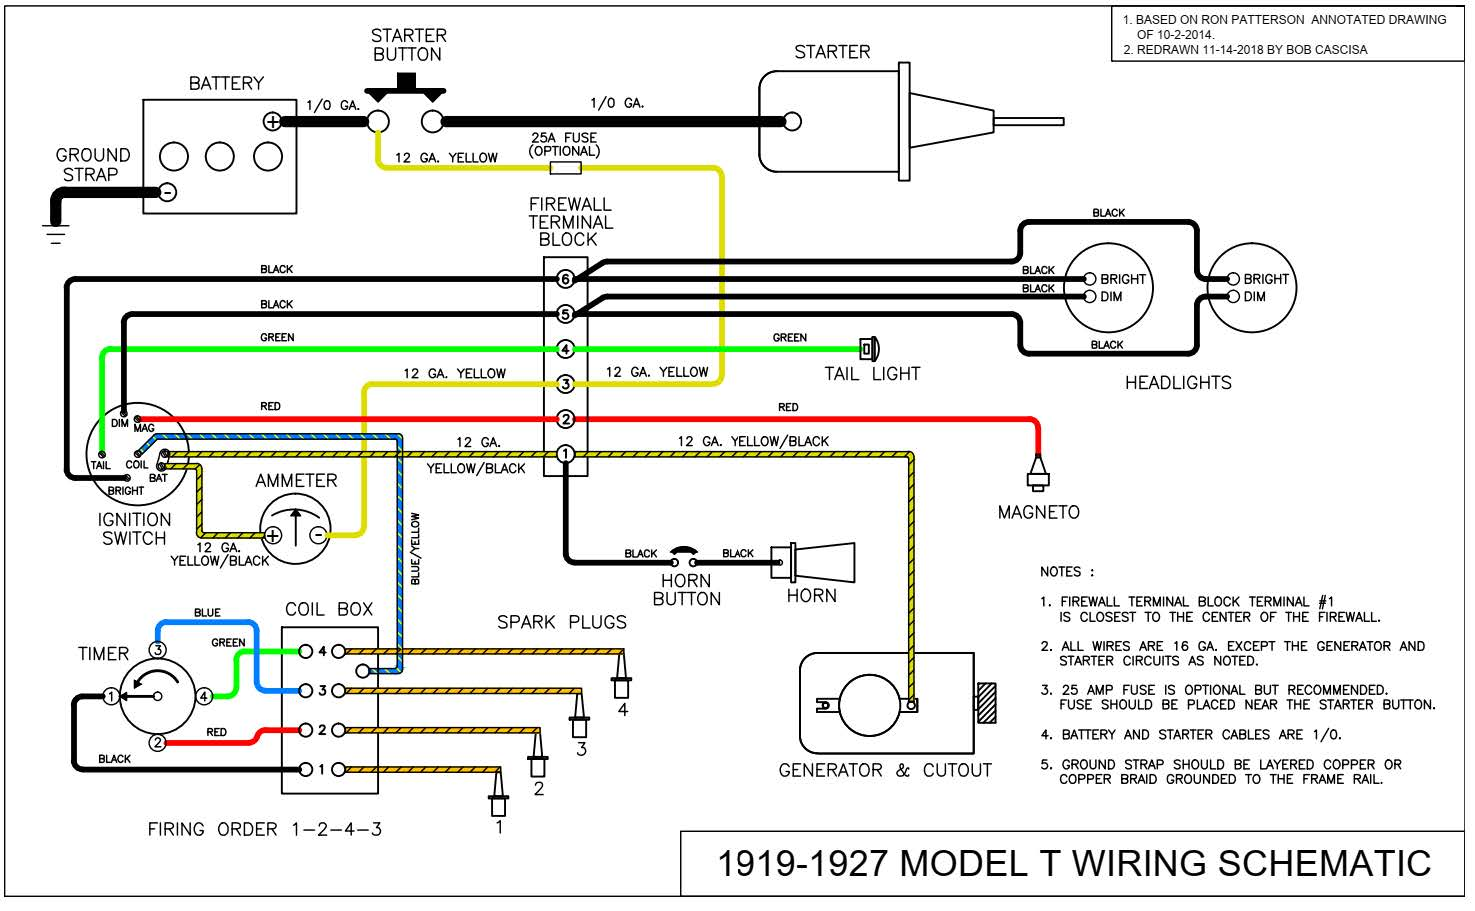 hight resolution of alternator and starter schematic diagrams of 1964 ford b f and t 64 falcon wiring diagram